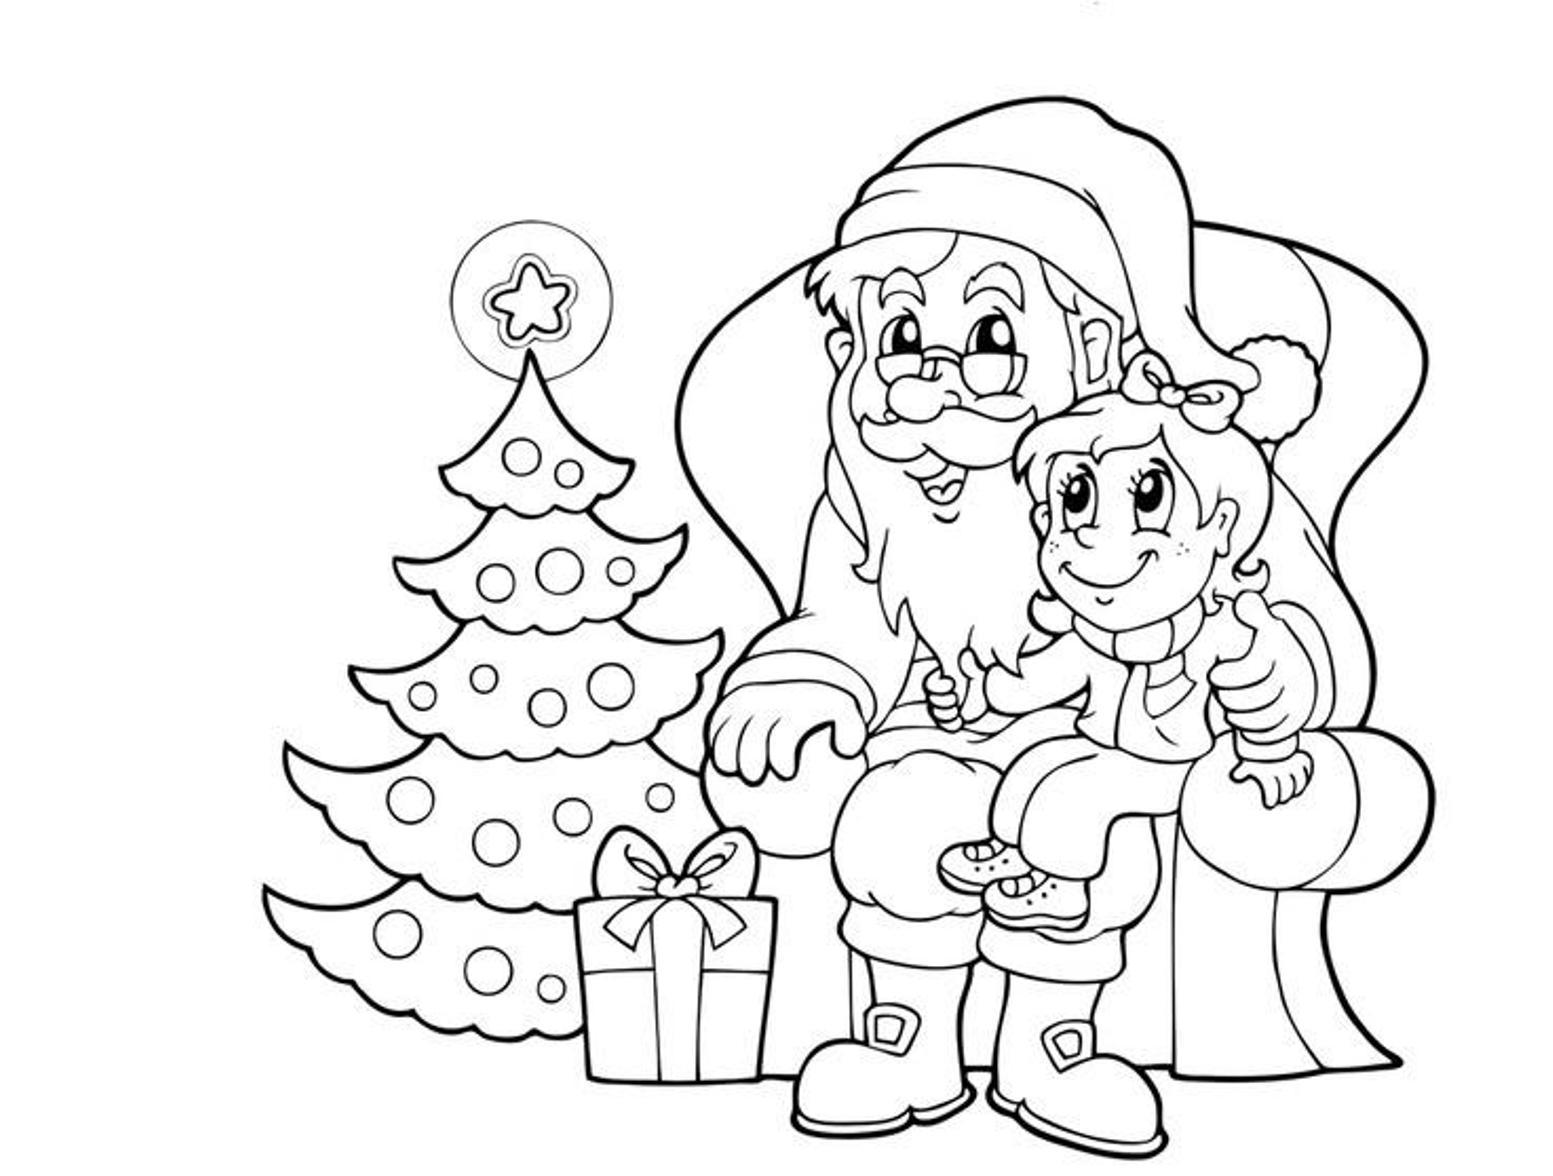 colour in father christmas father christmas colouring pictures clipartsco colour in christmas father